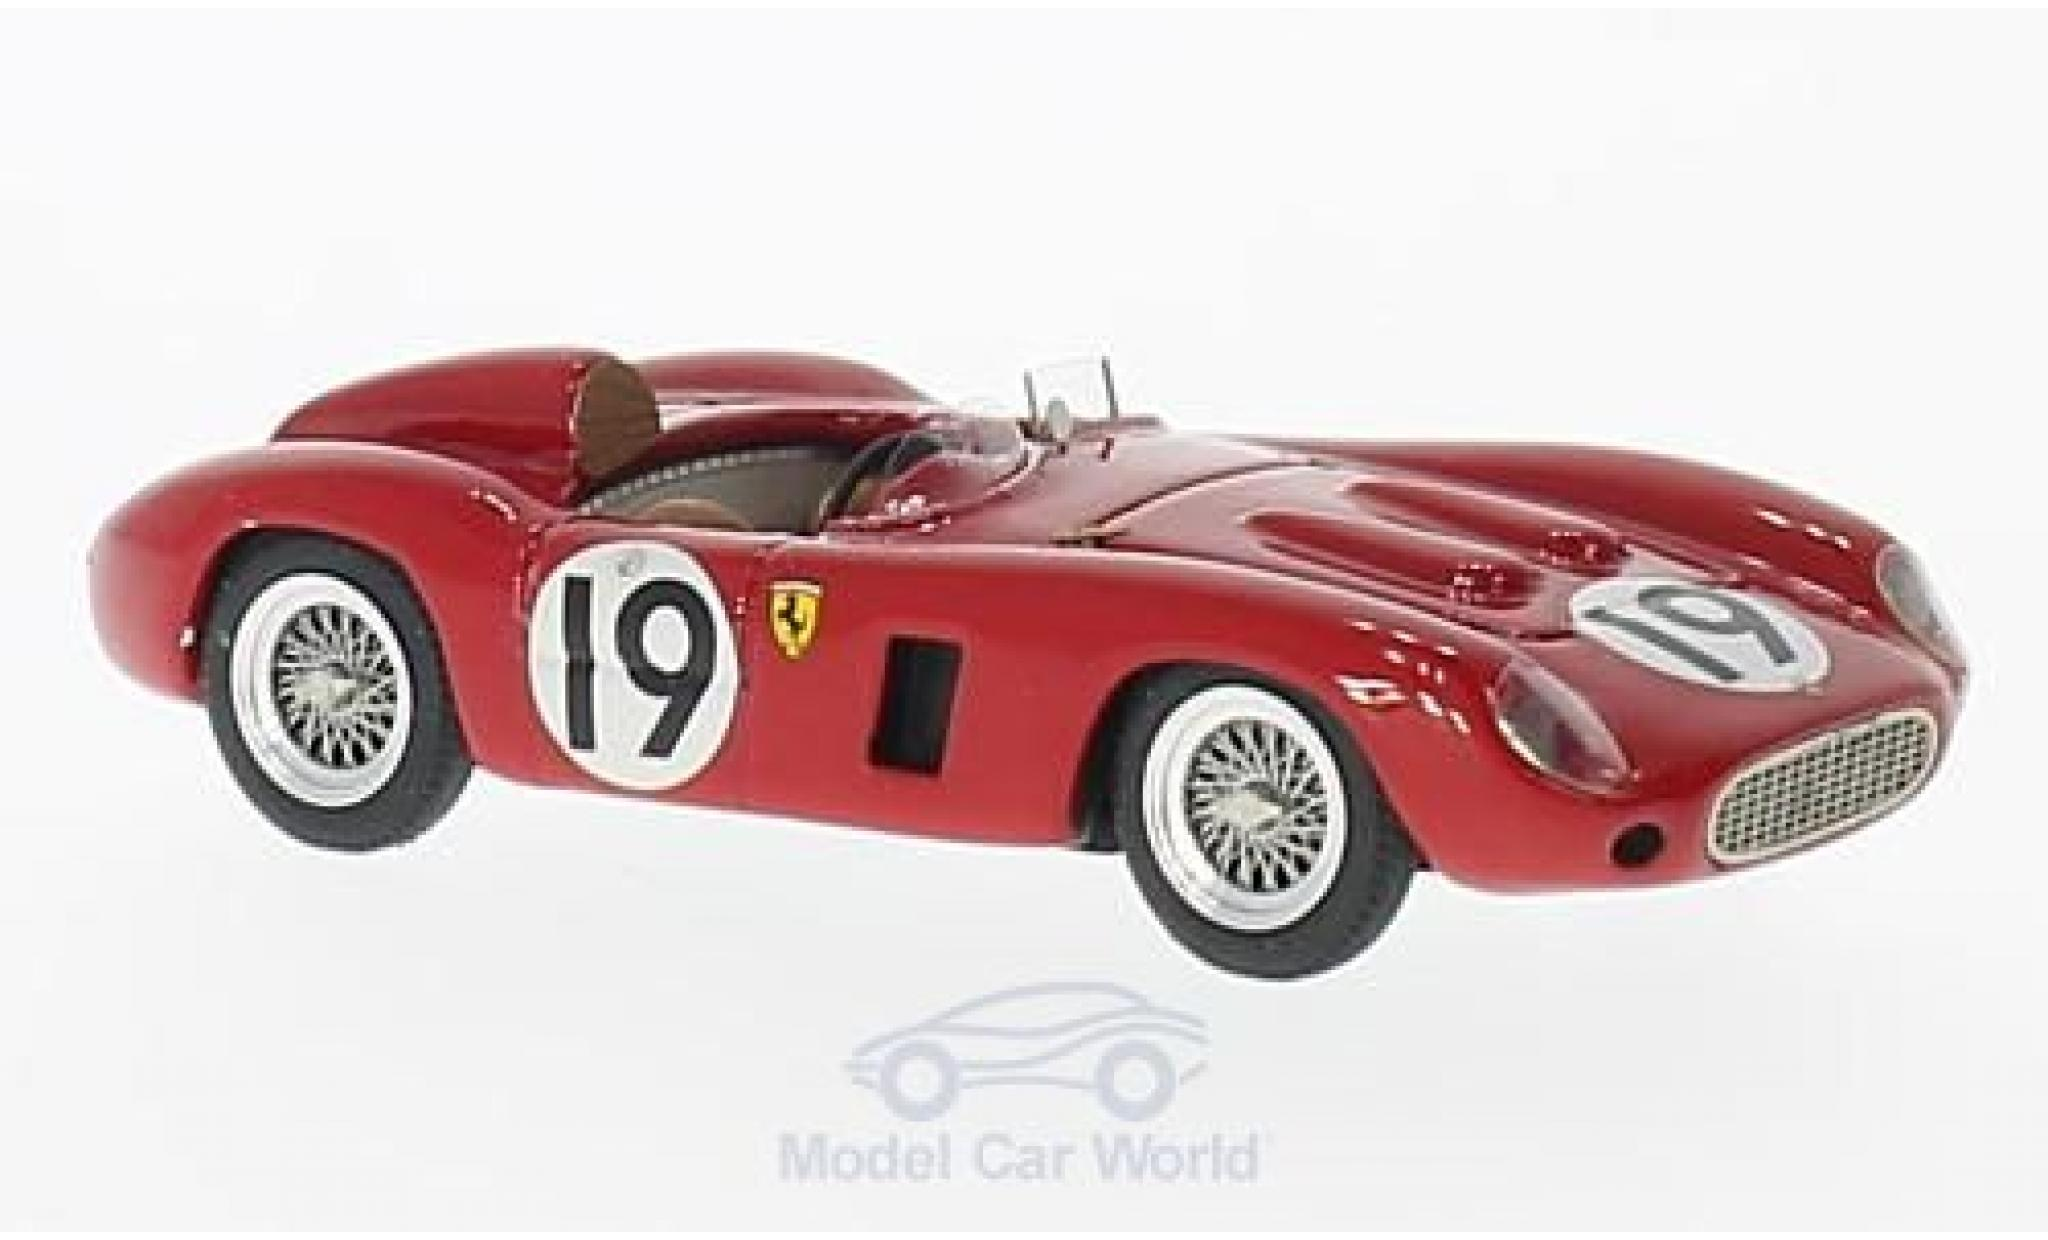 Ferrari 857 1/43 Jolly Model S RHD No.19 12h Sebring 1956